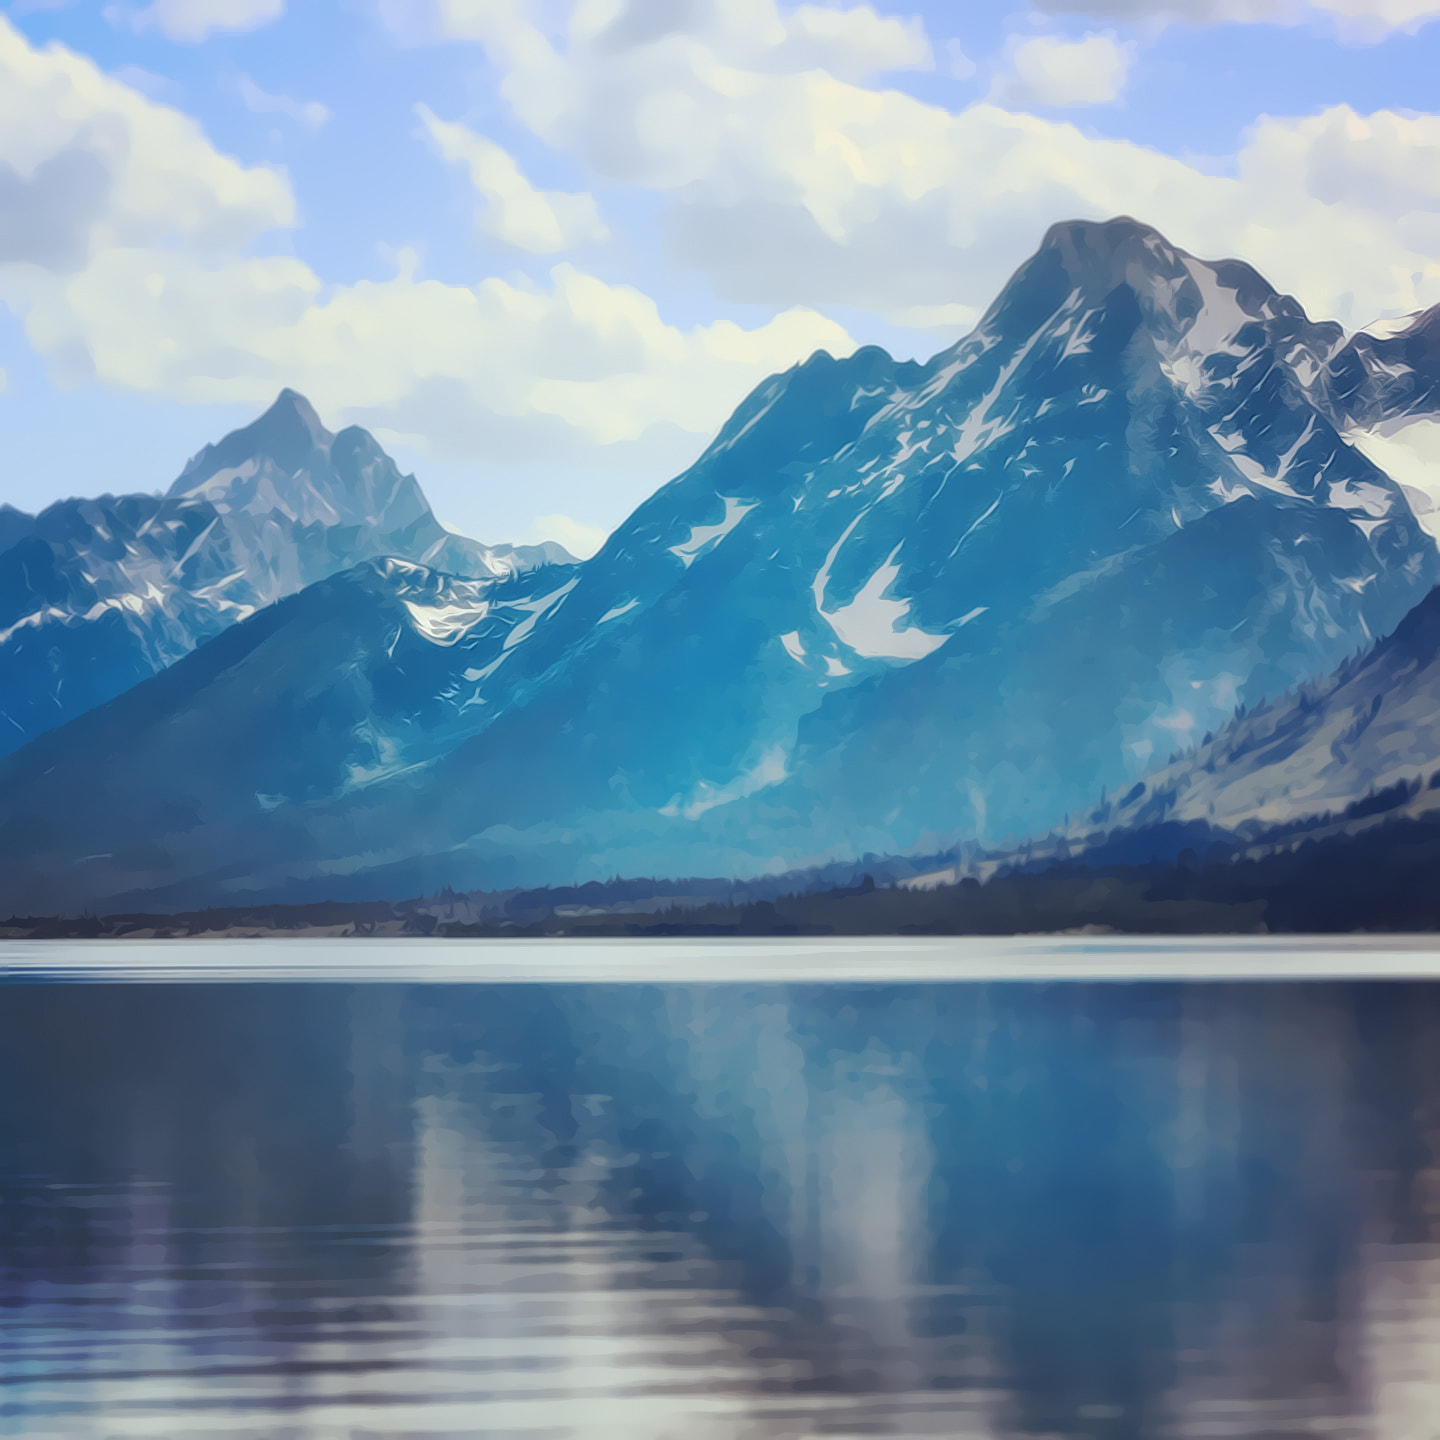 Photograph The Grand Tetons by Darcy Wheeler on 500px